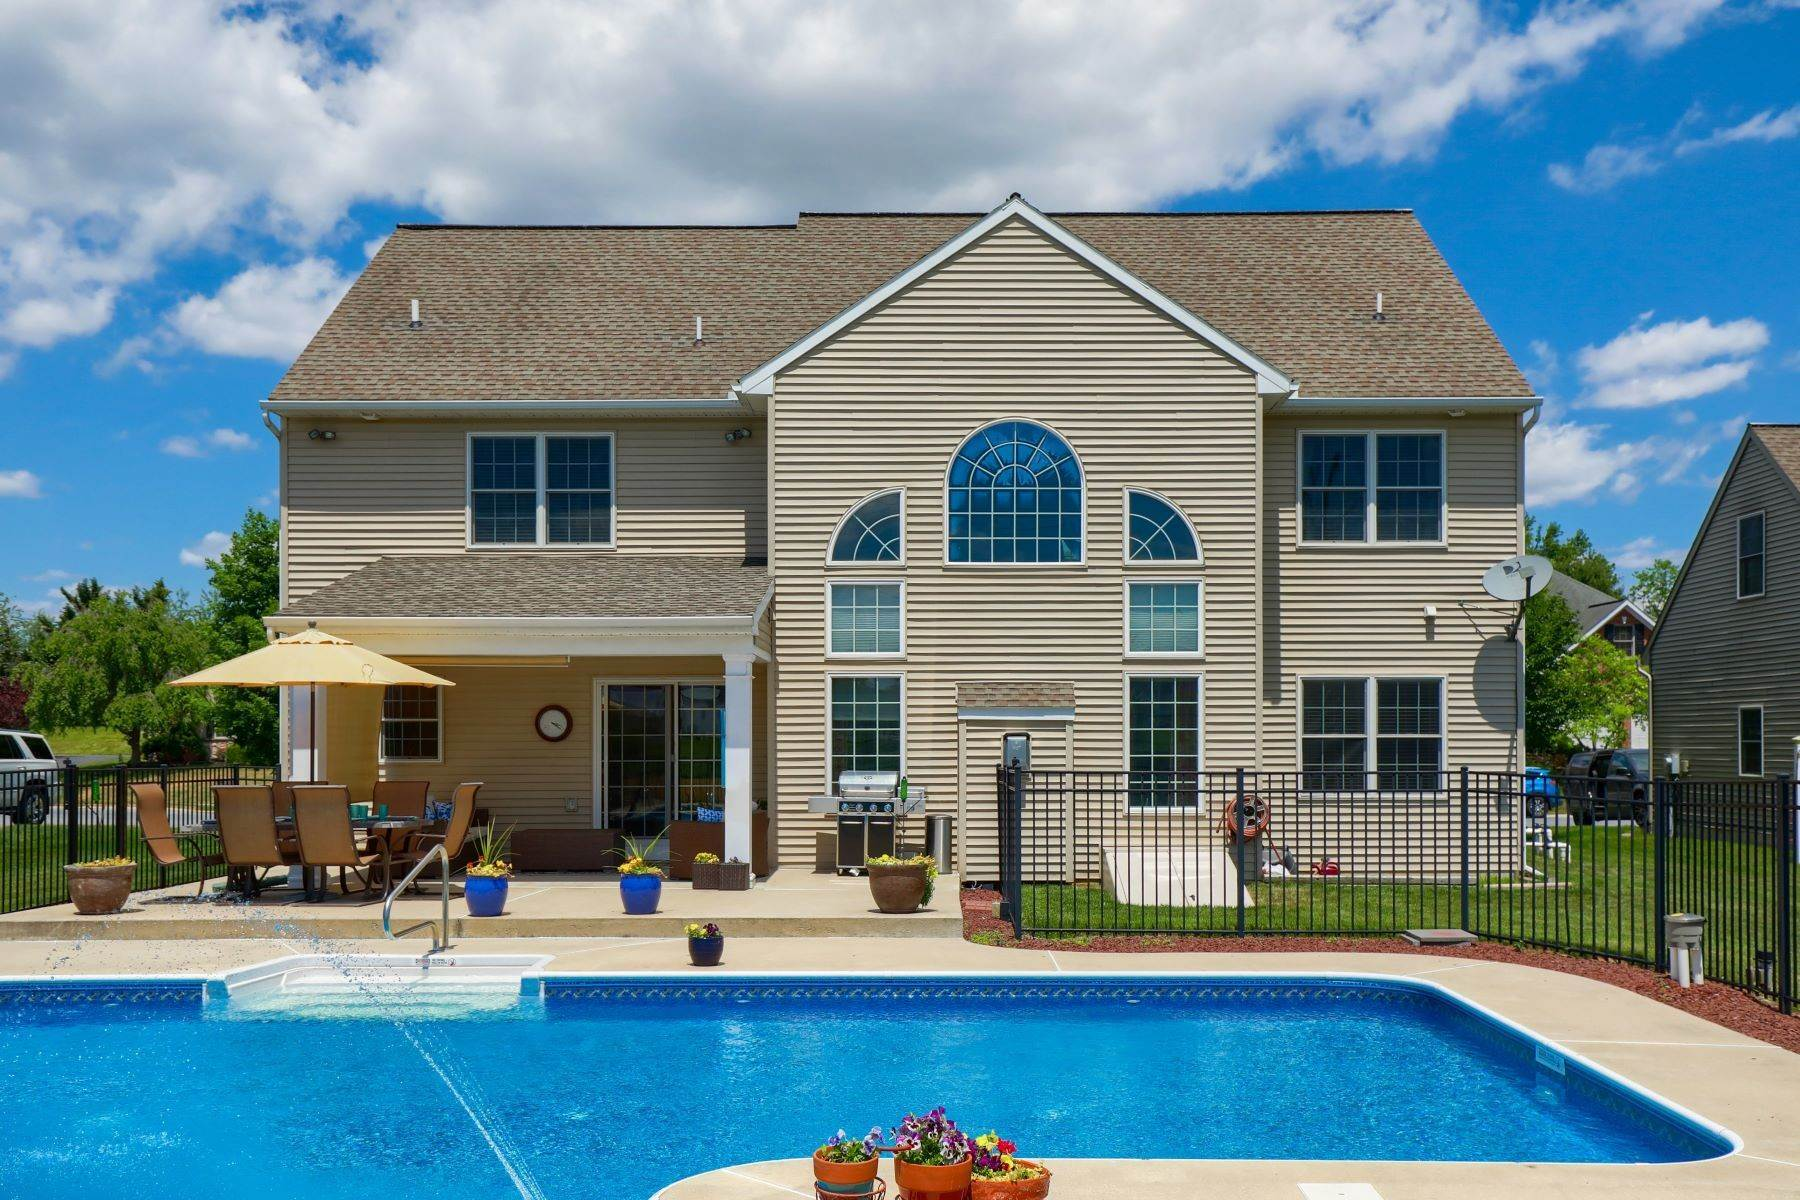 41. Single Family Homes for Sale at 18 Jared Place Lititz, Pennsylvania 17543 United States